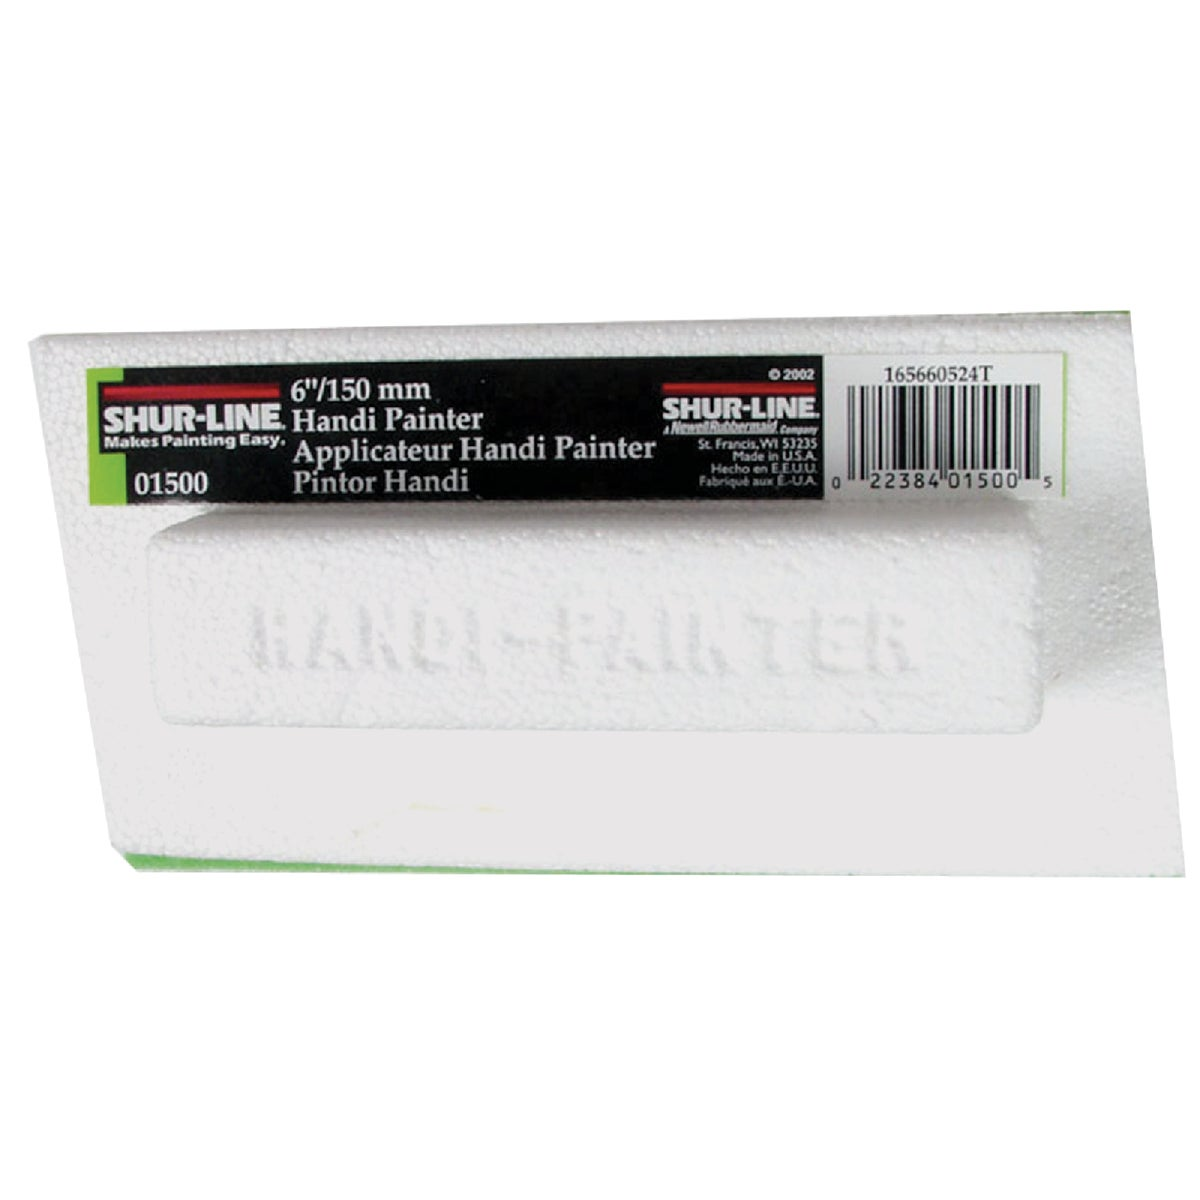 HANDI PAINTER TOOL - 01500C by Shur Line